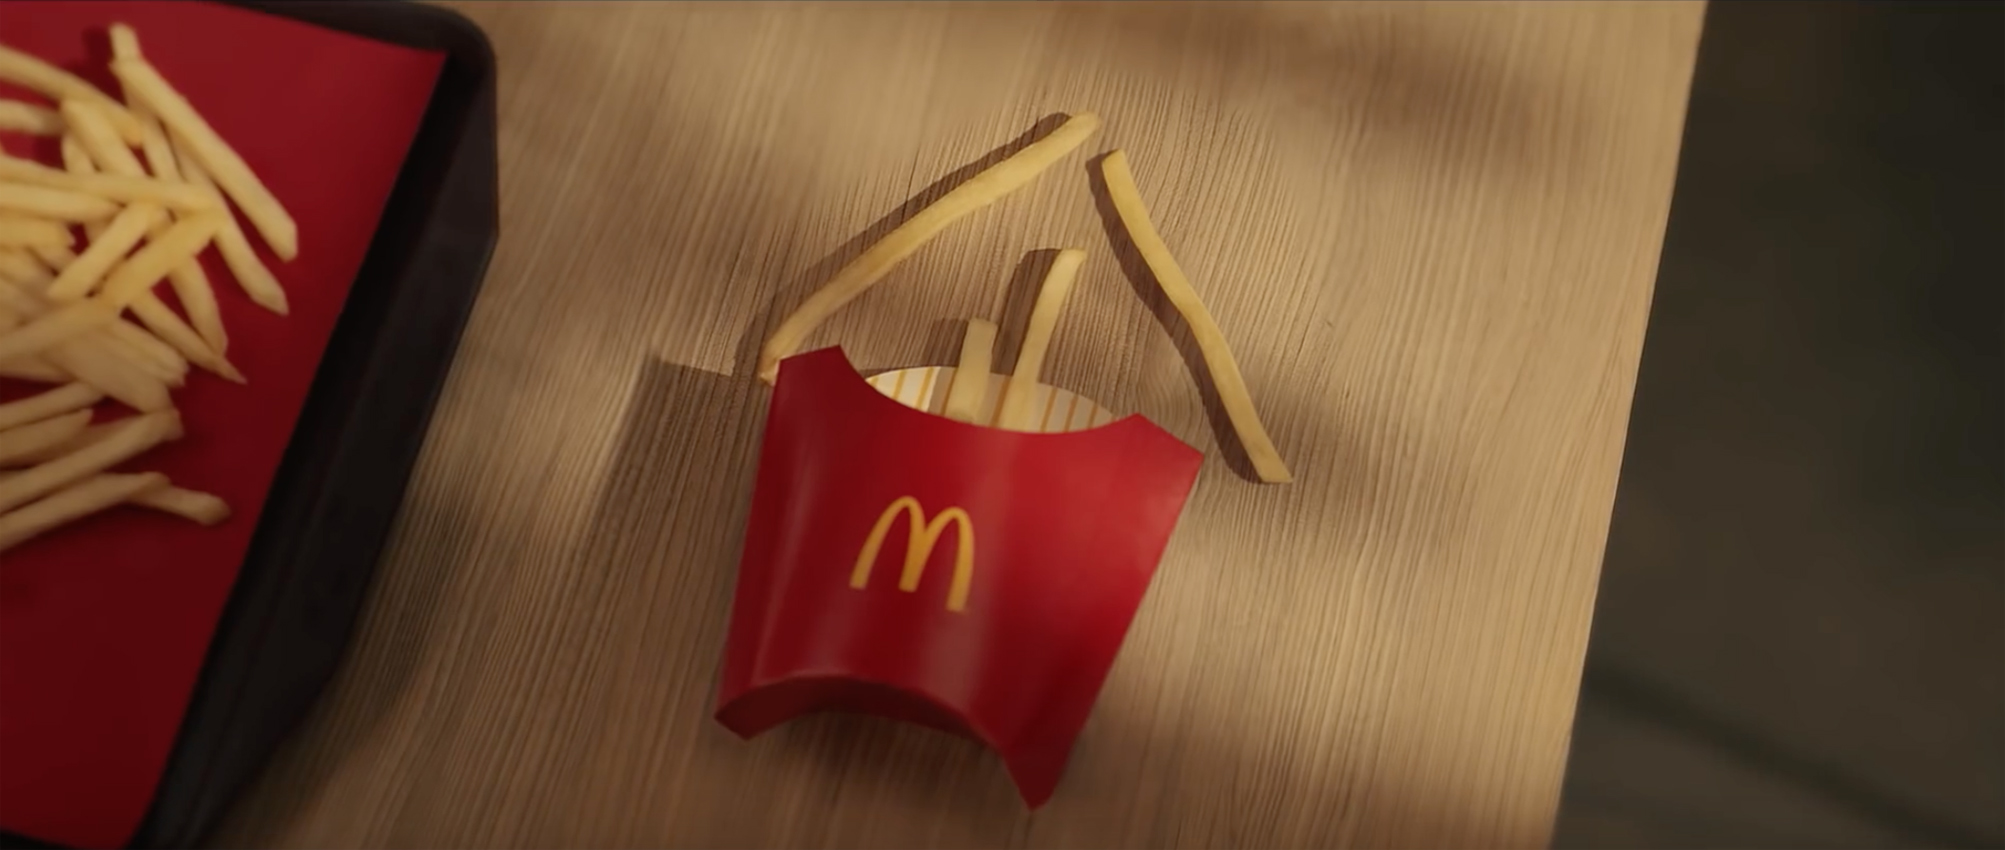 Leo Burnett Manila releases touching McDonald's Mother's Day message